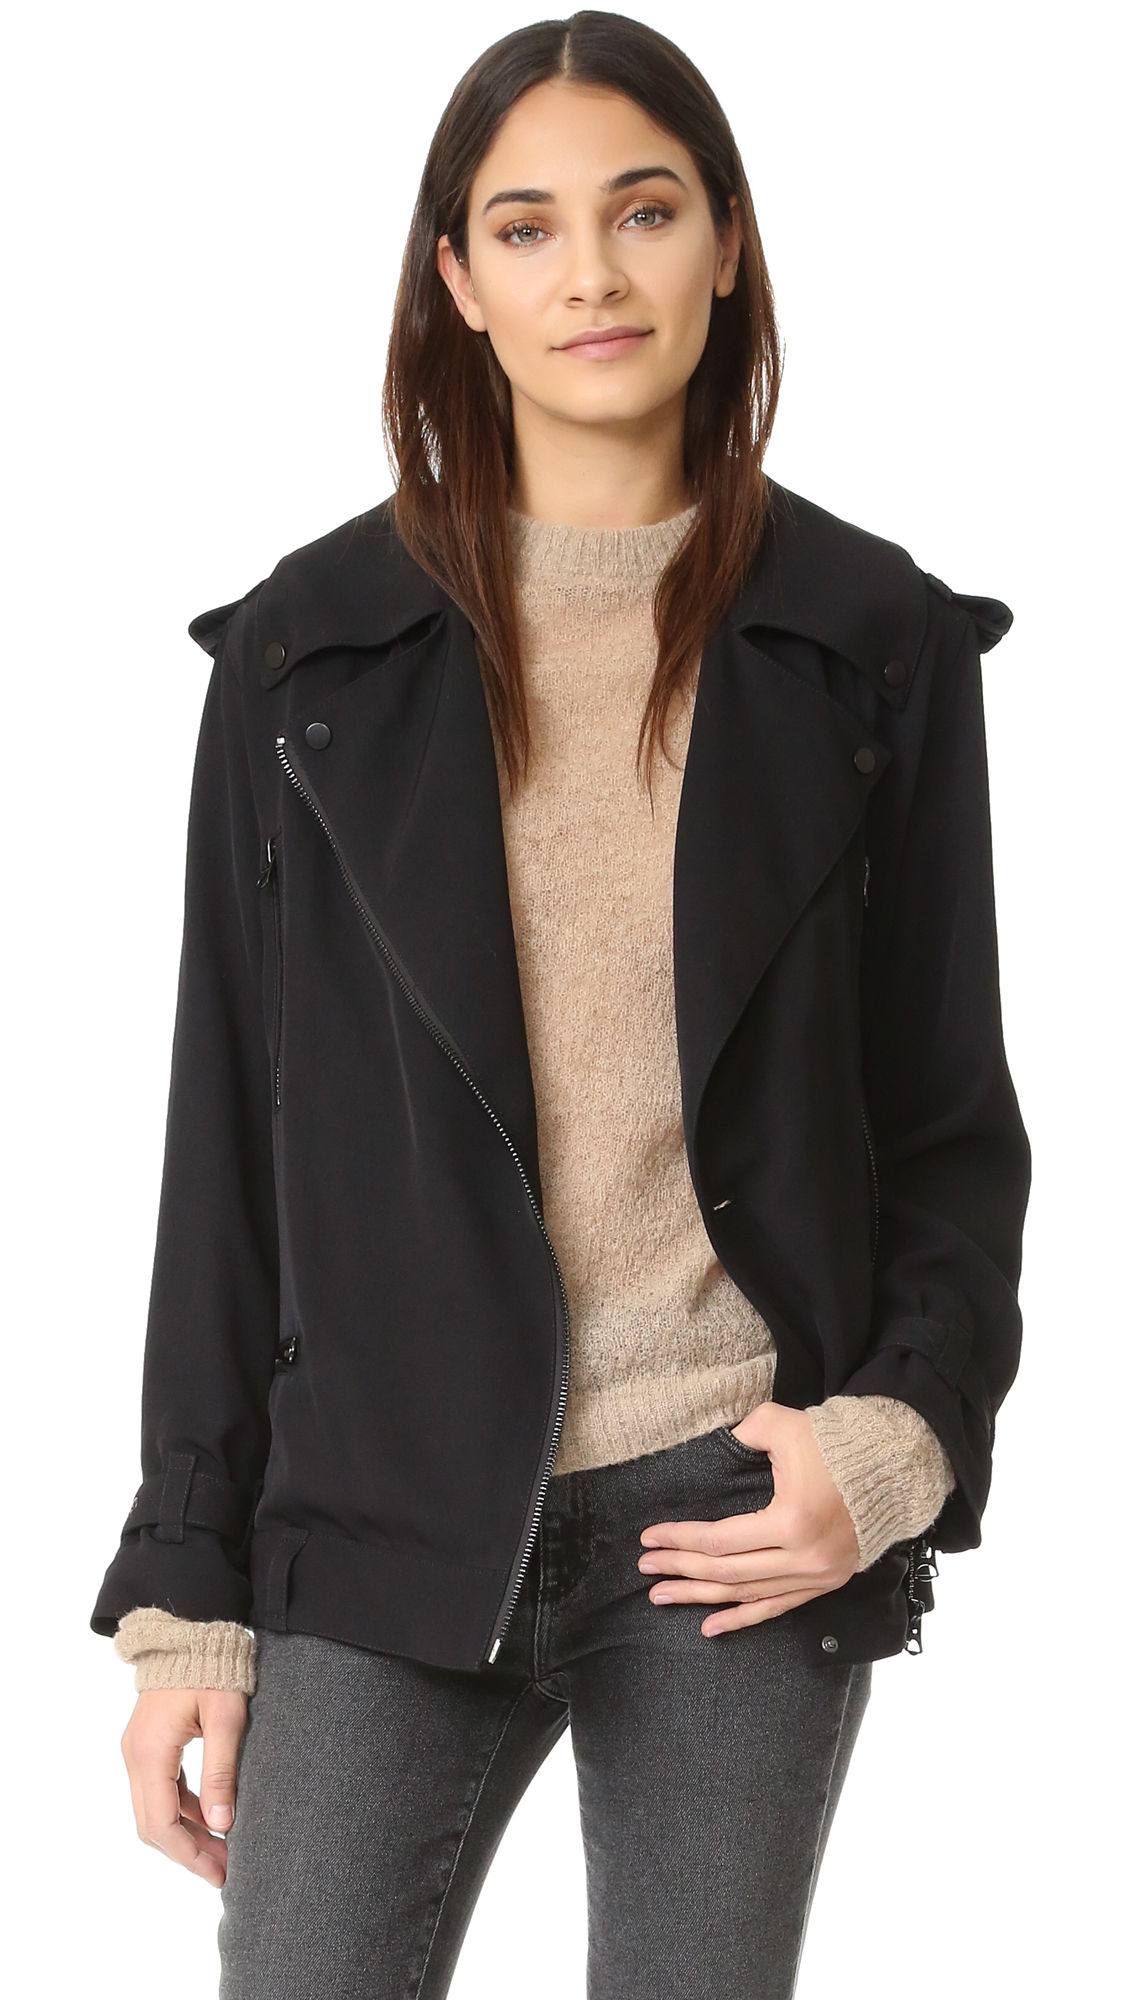 Acne Studios Lilja Moto Trench Jacket - Black at Shopbop